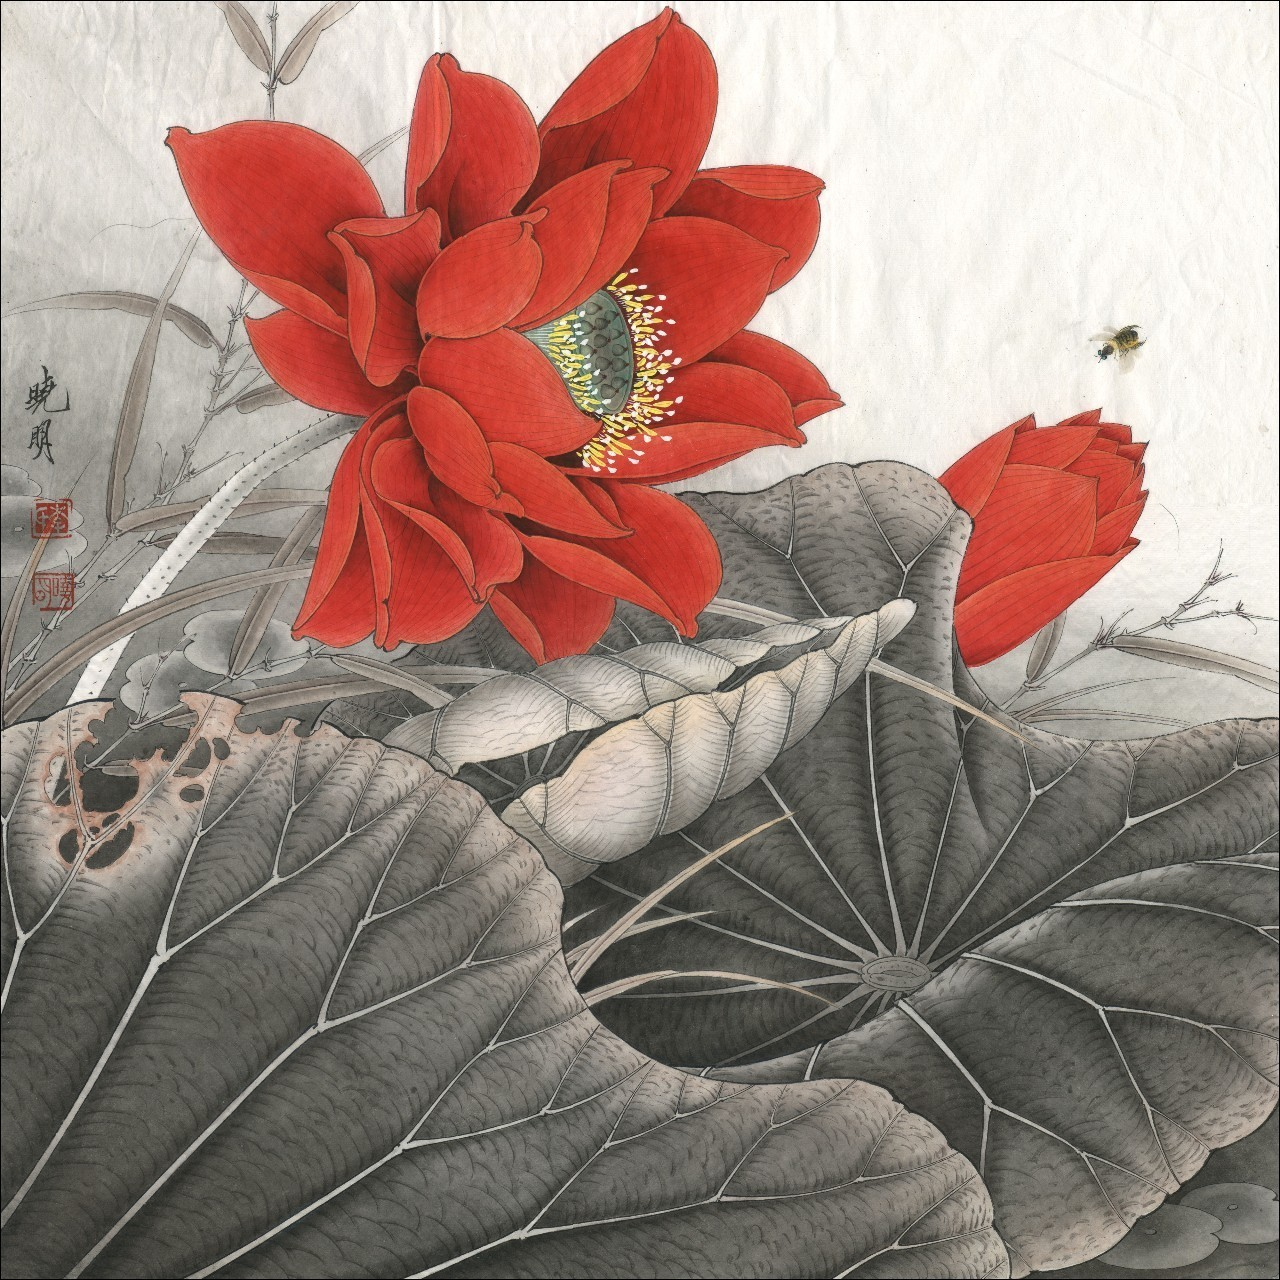 Red lotus flower meaning and symbolism mythologian the red lotus flower its meaning and symbolism in eastern religions and traditions buycottarizona Choice Image